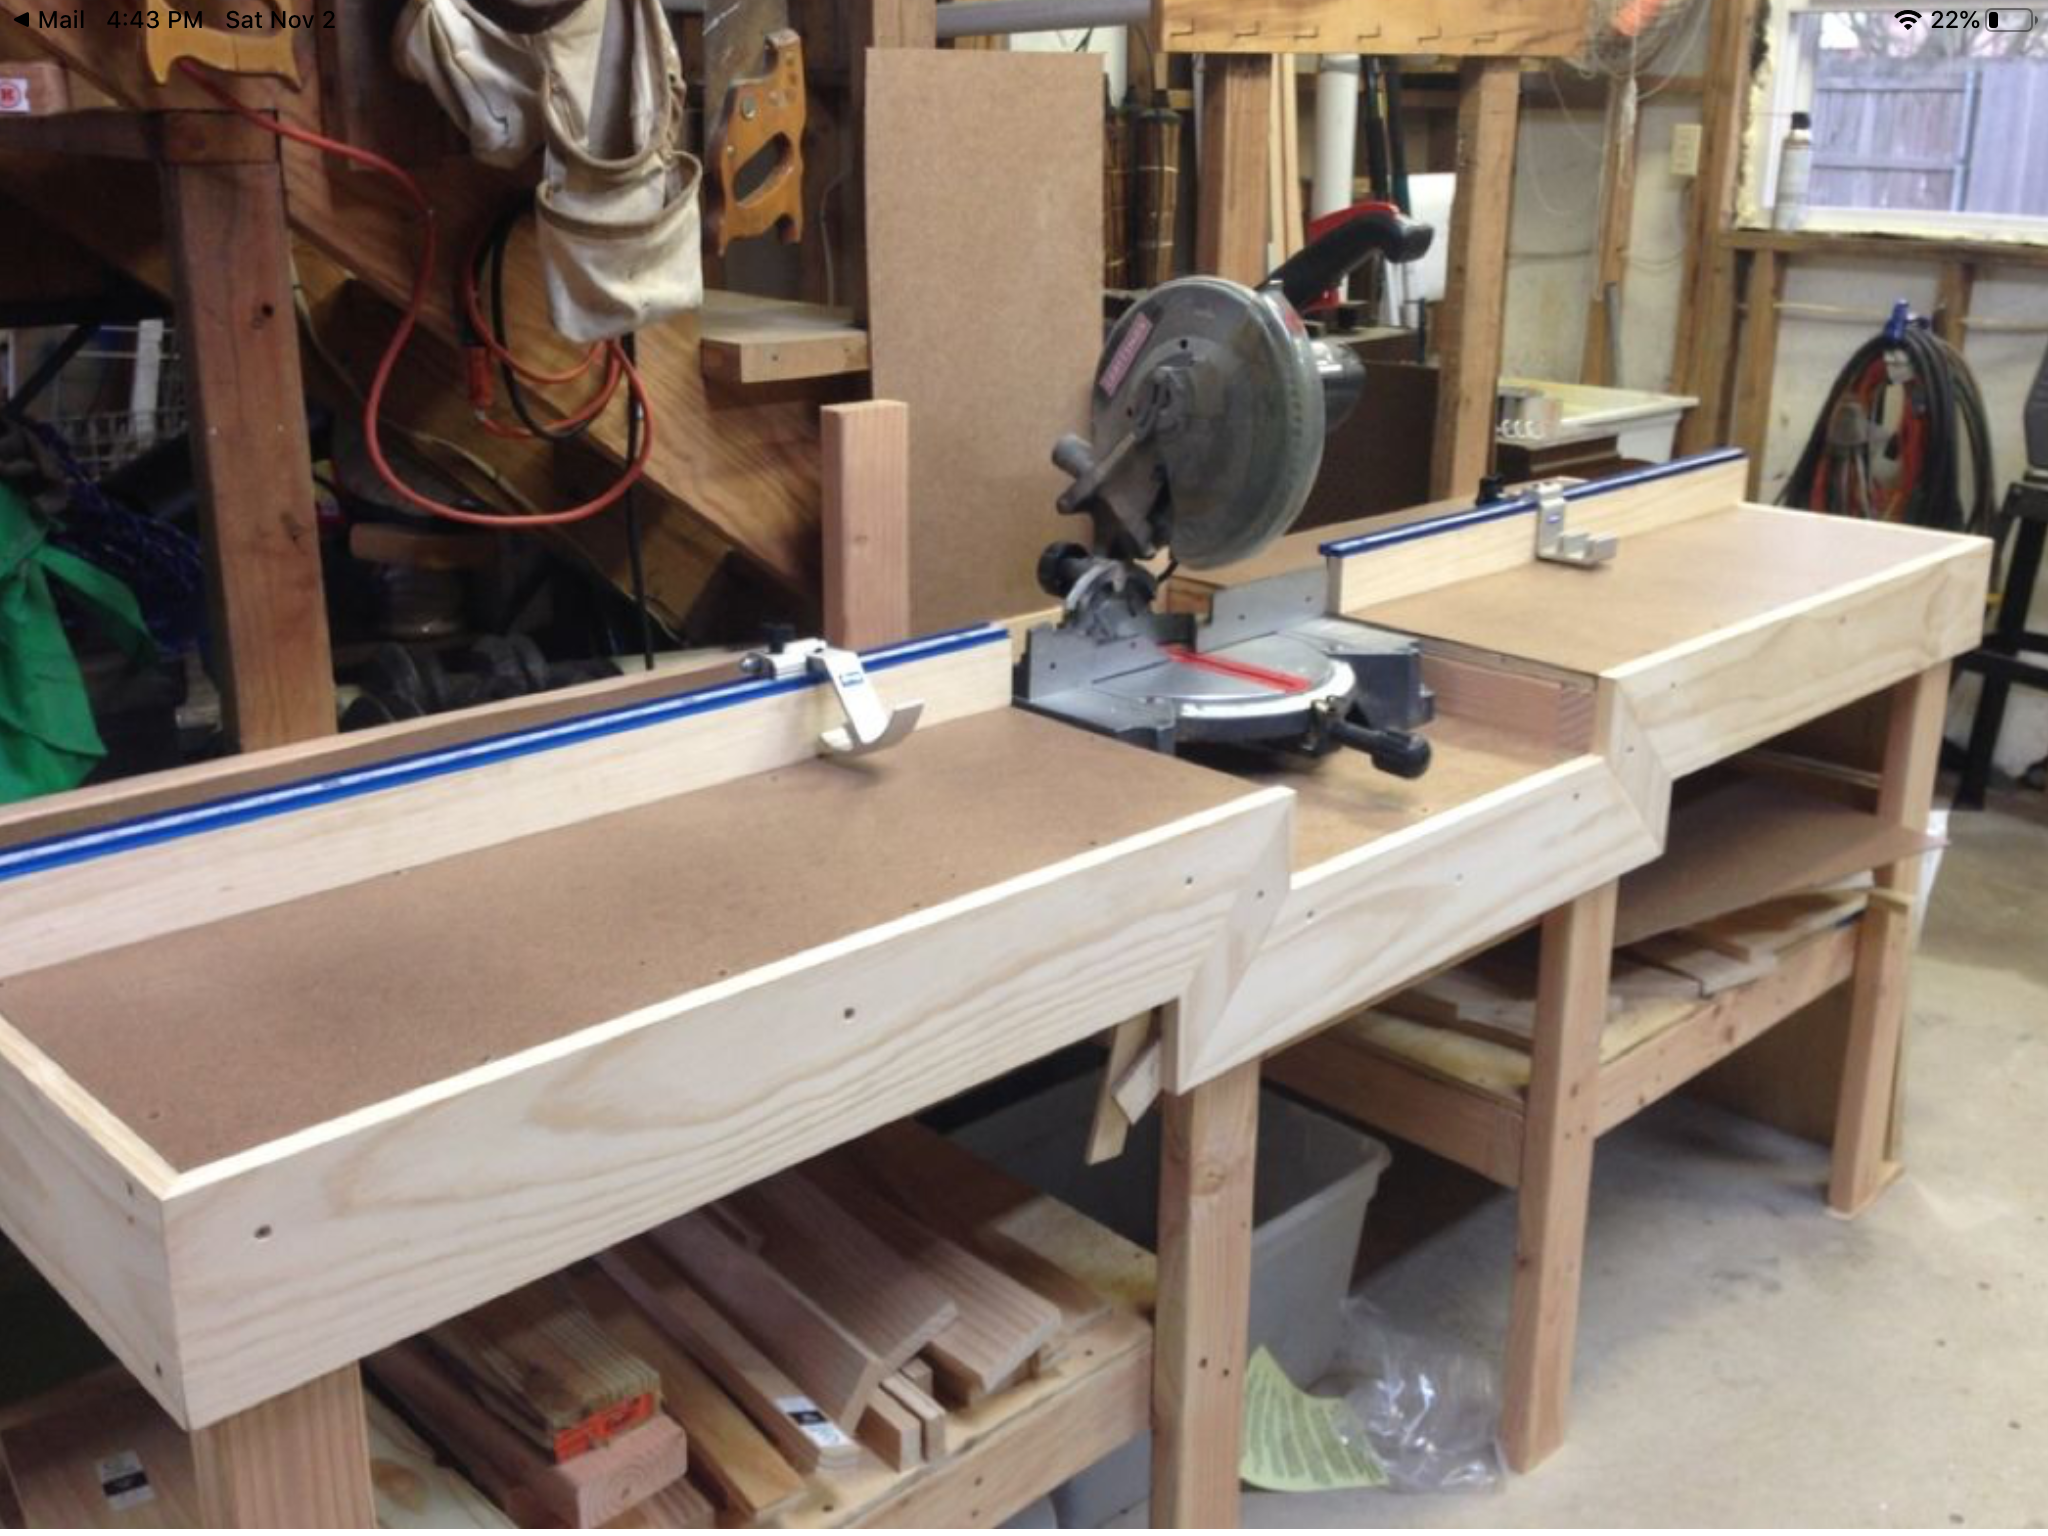 Pin By Boris Lenoire On How To Shop Tips Woodworking Bench Plans Woodworking Shop Layout Woodworking Workbench